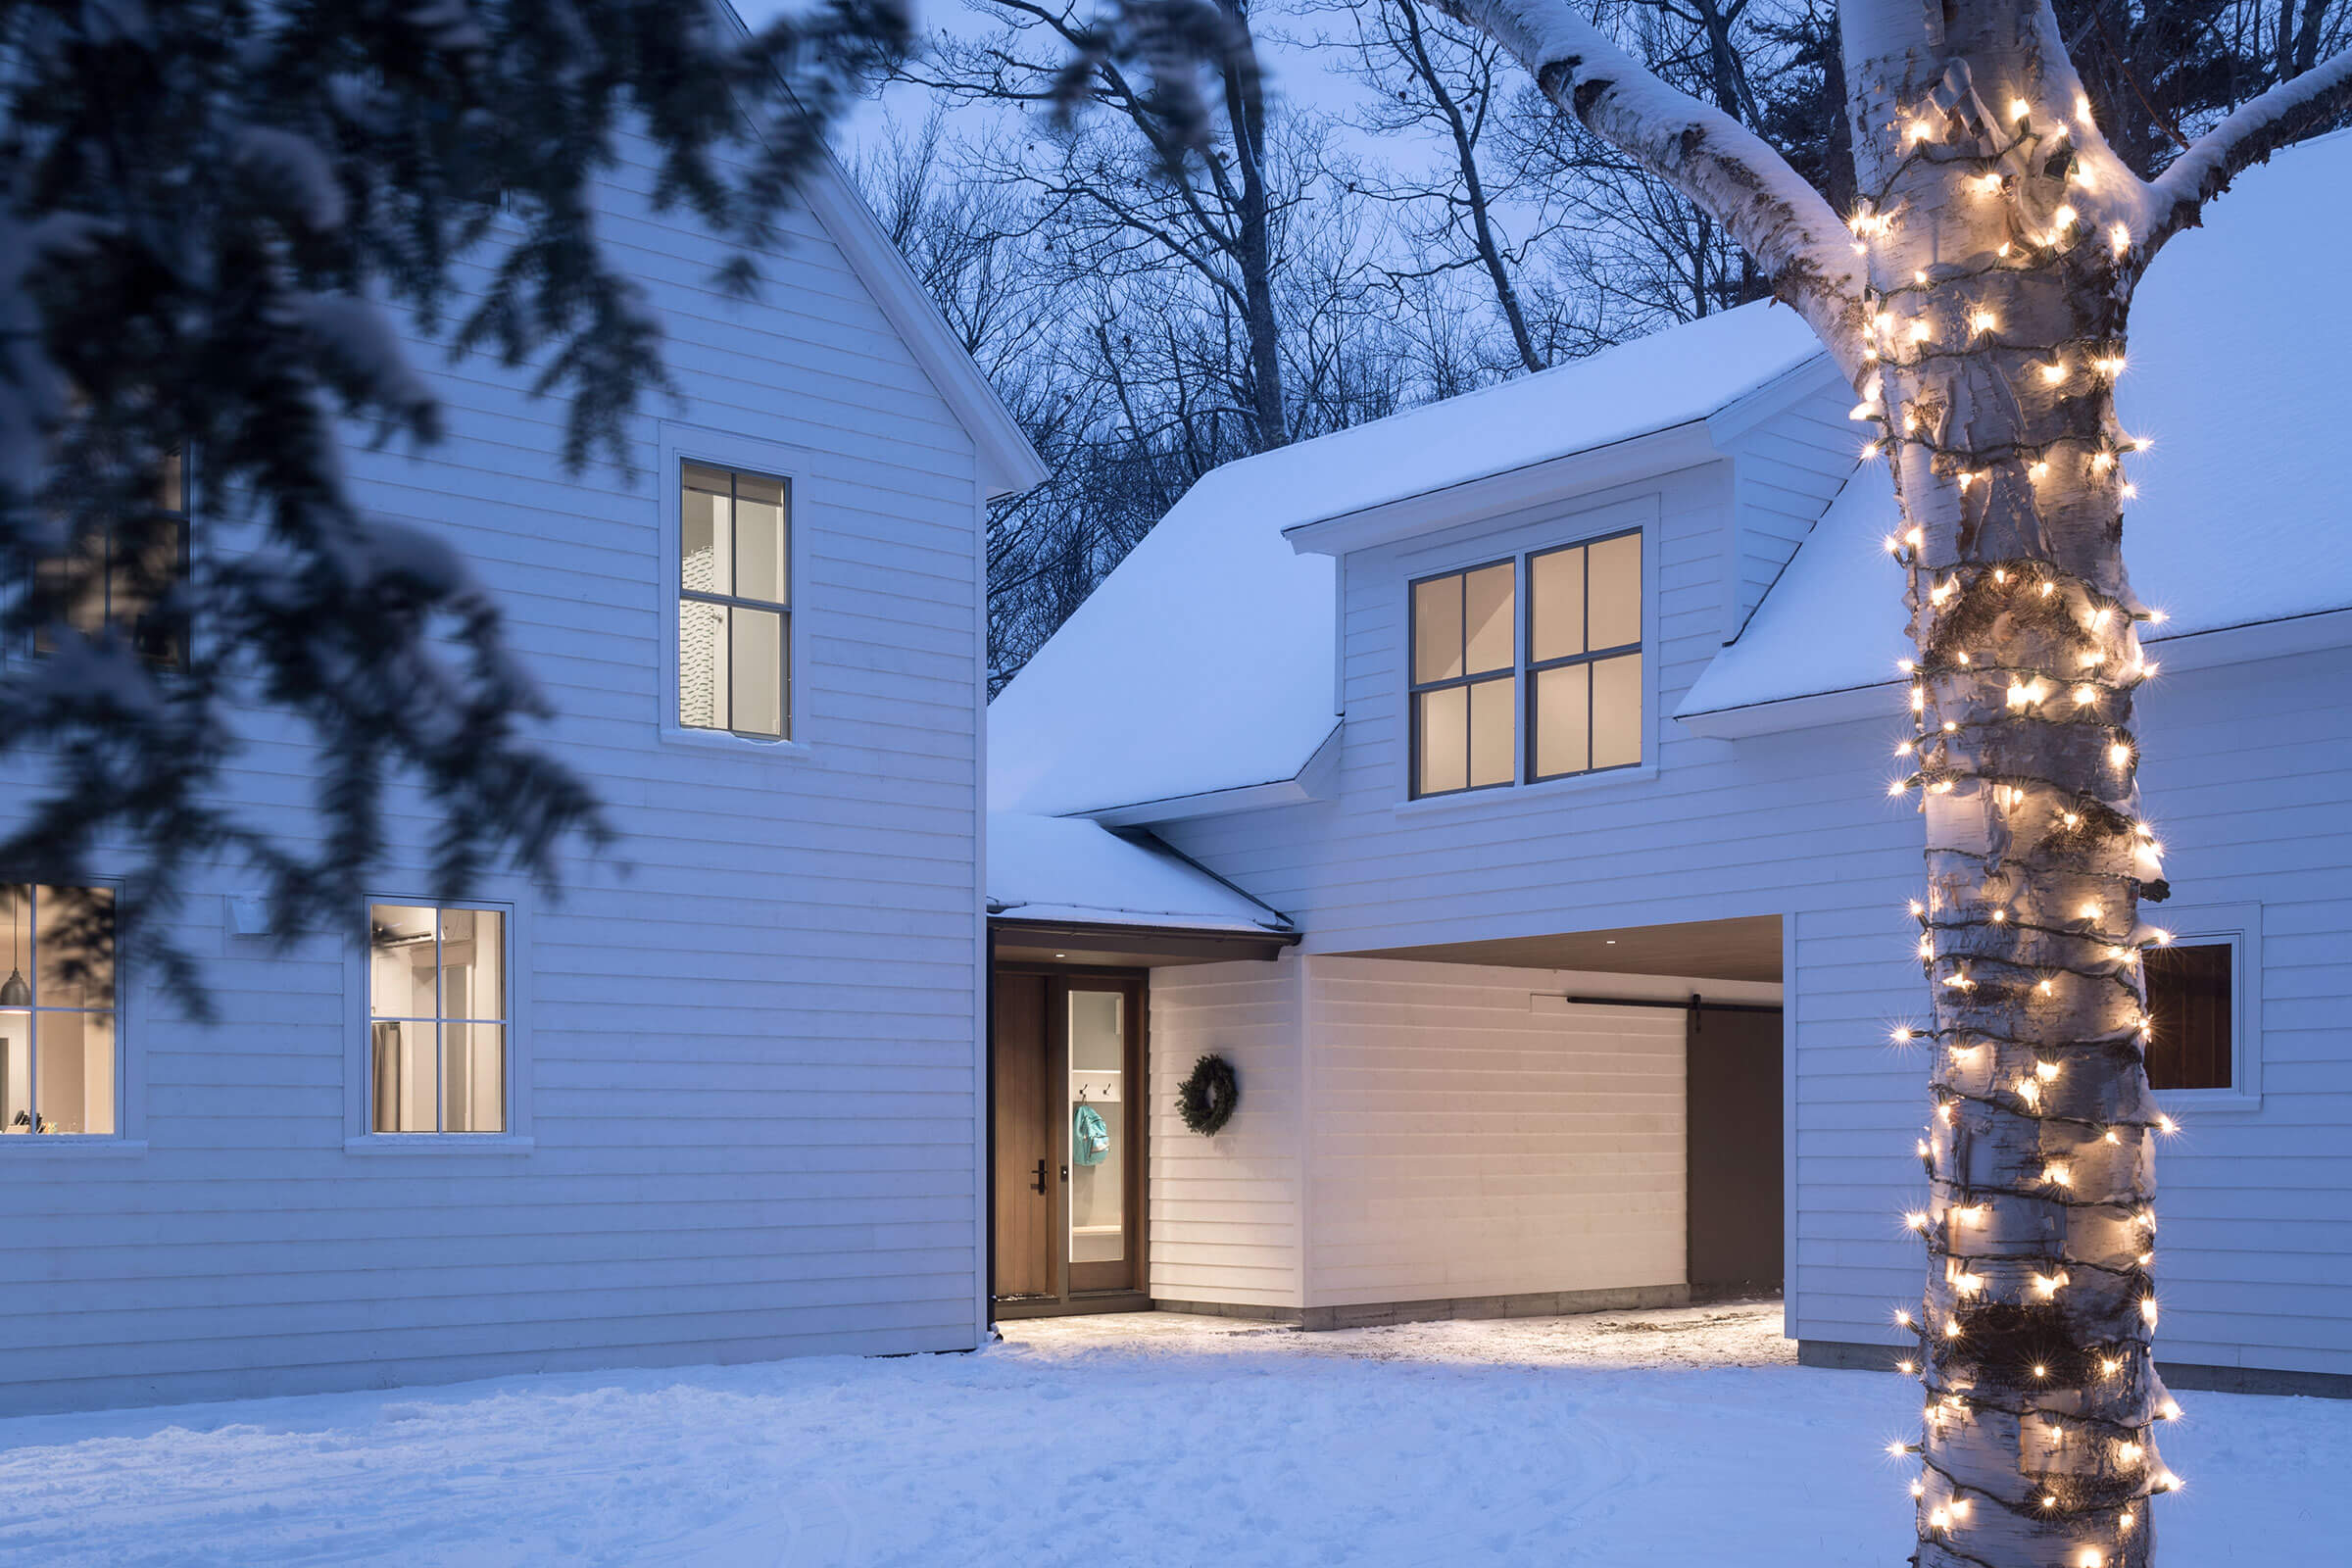 Beautiful Snowy Scene Of Home With Elevate Windows And Doors